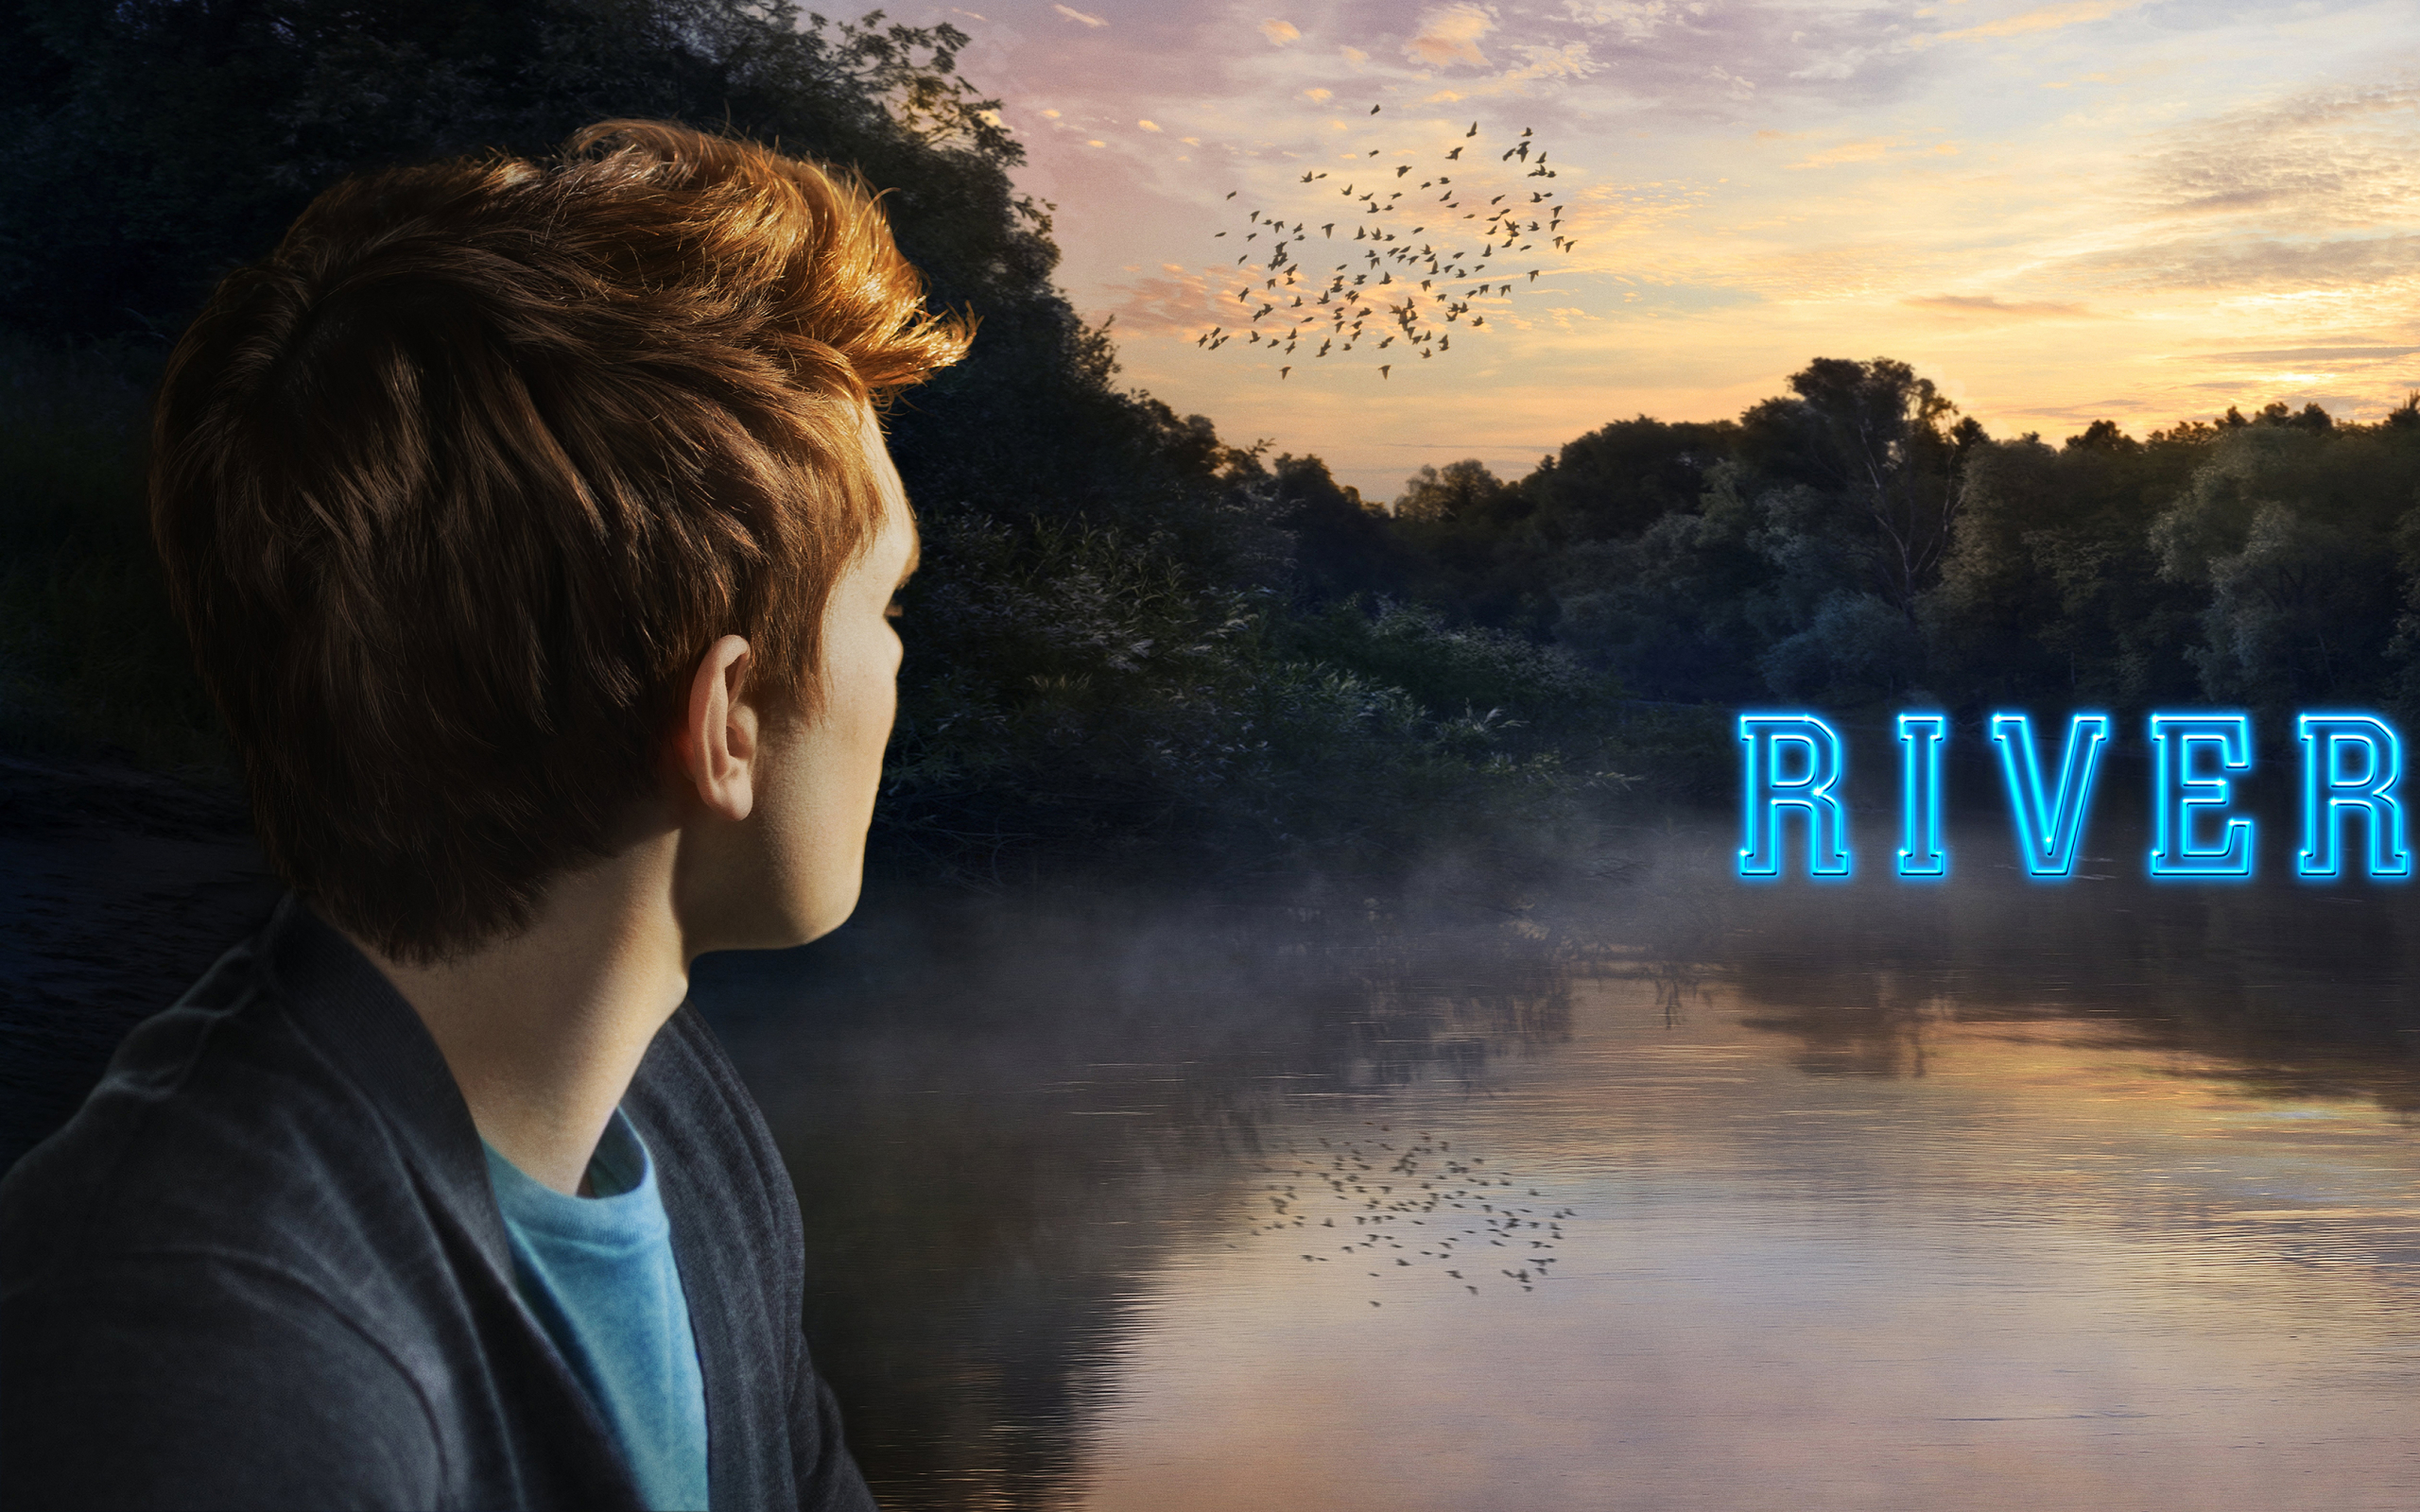 Download Riverdale 720x1280 Resolution, HD 4K Wallpaper